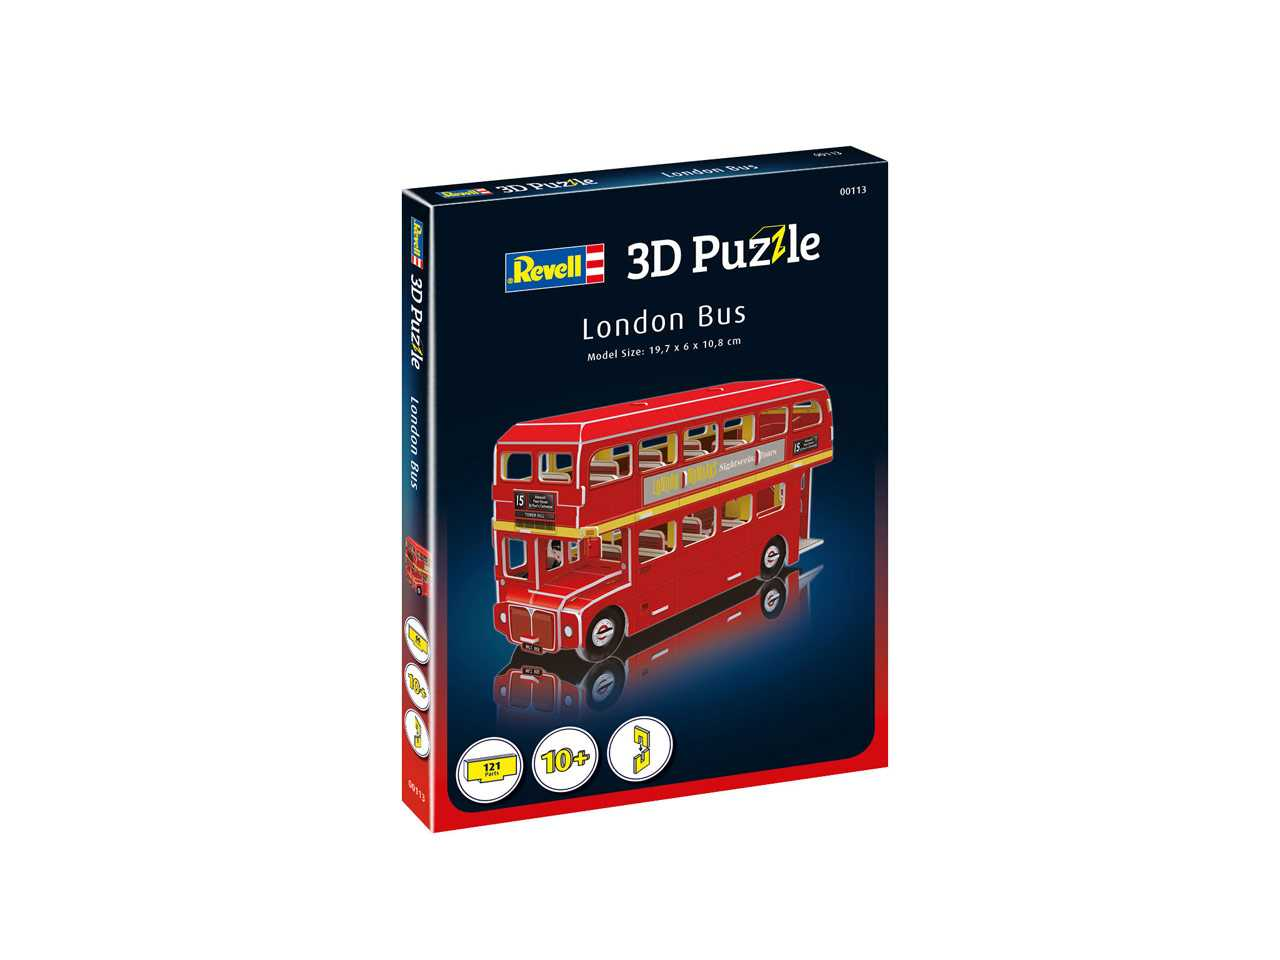 3D Puzzle REVELL 00113 - London Bus